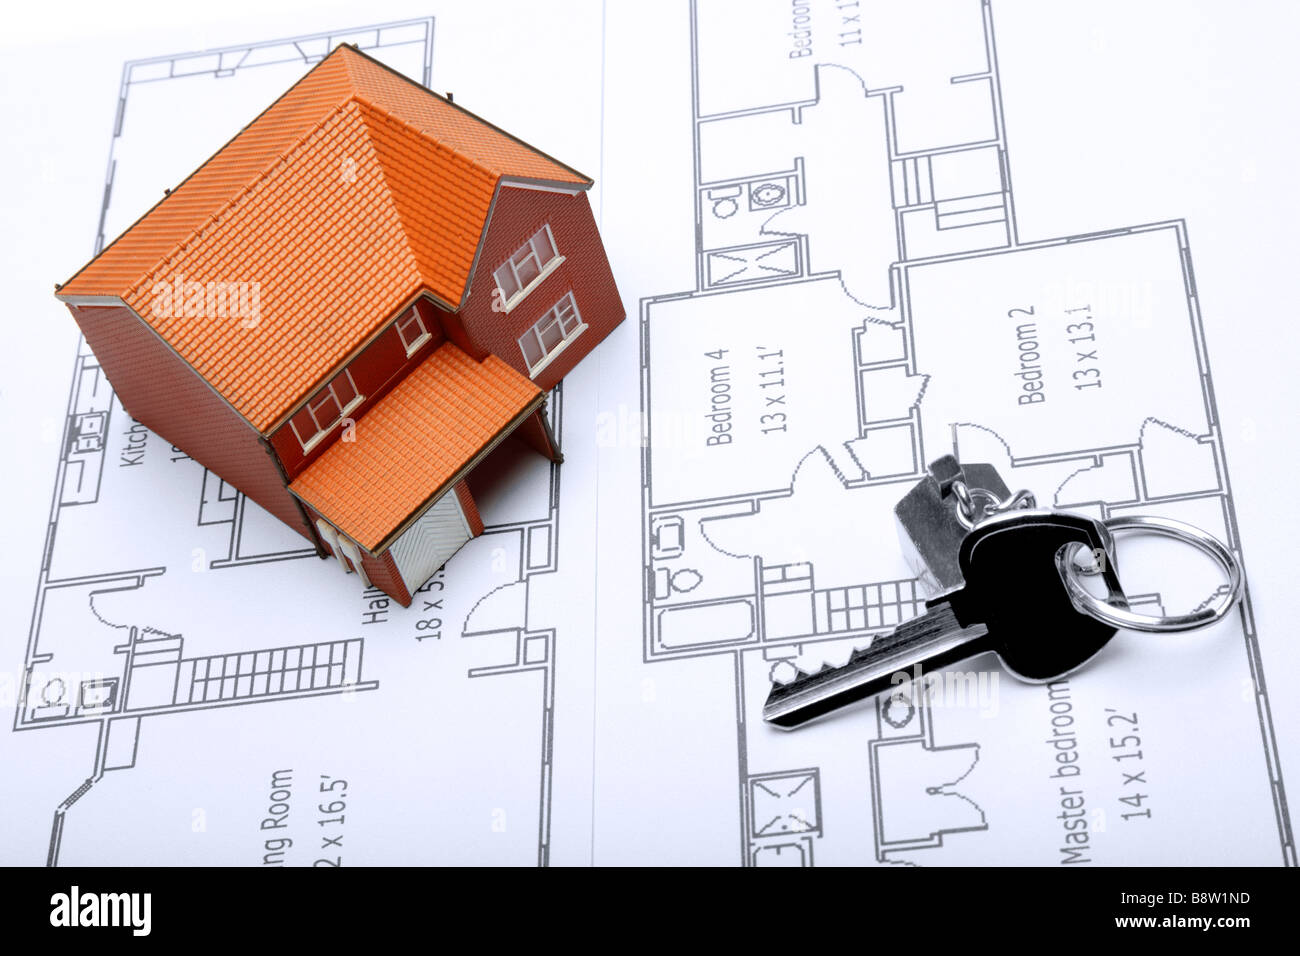 A model home and house key on architectural floor plans for an extension Stock Photo